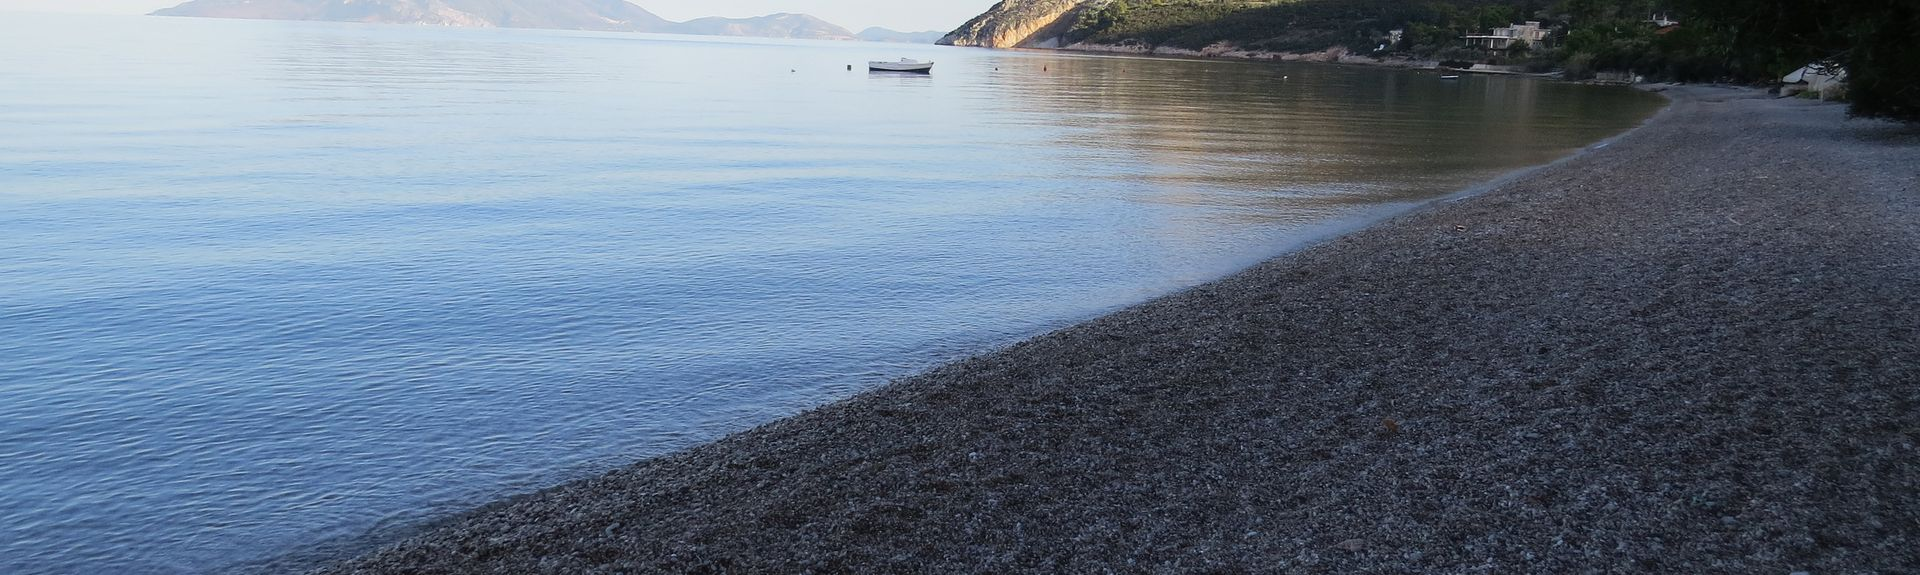 Tolo Beach, Tolo, Peloponnese, West Greece and Ionian Sea, Hellas